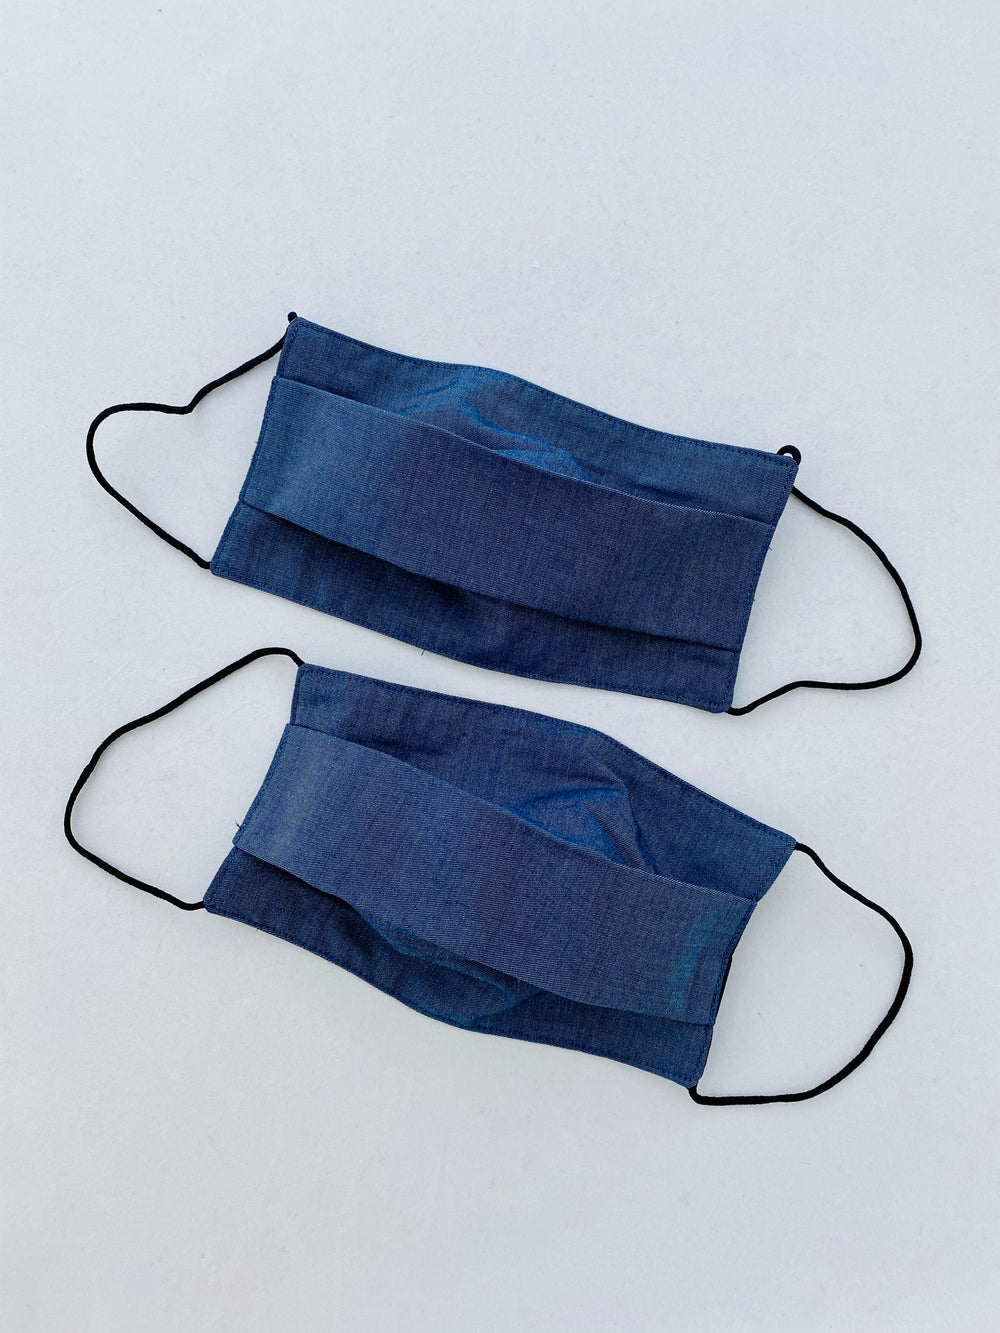 Two Pack Mask B5 Navy Blue Bamboo Reusable Pleat Style Adults Unisex 2 Layer